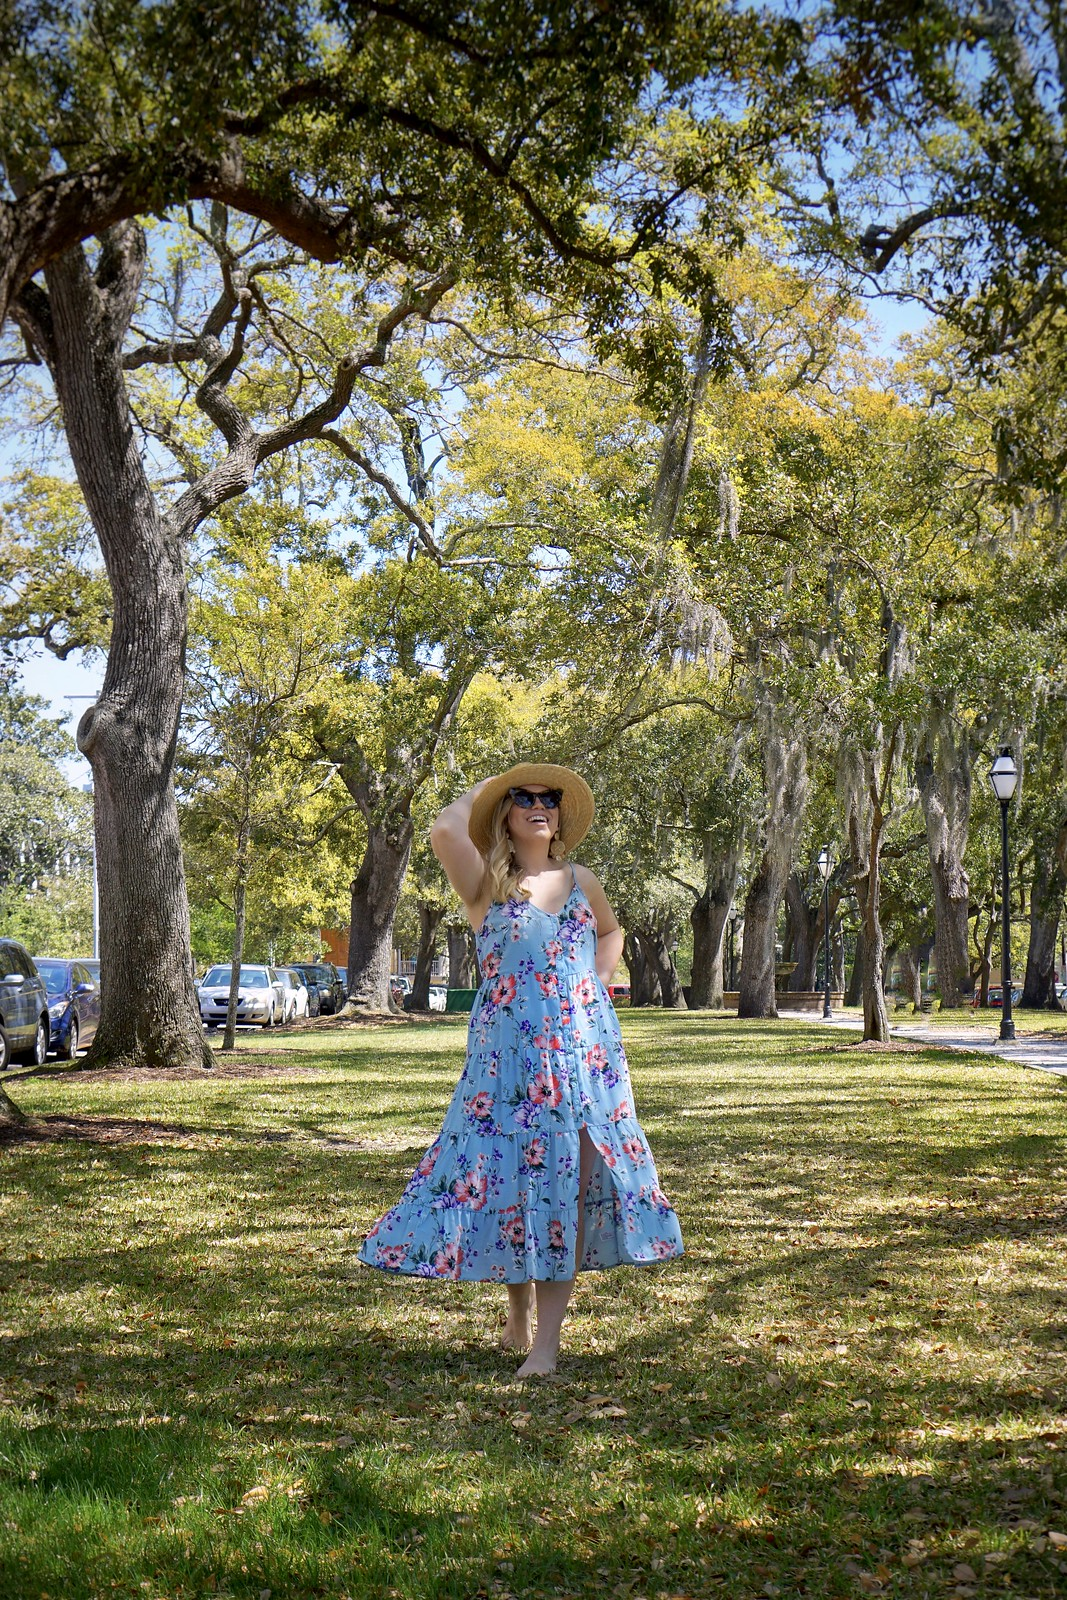 Blue Floral Midi Dress | Straw Hat Outfit | First Timer's Guide to 3 Days in Charleston South Carolina | What to do in Charleston | Charleston Travel Guide | Best Things to do in Charleston | Best Places to visit in Charleston | Summer Outfit Ideas | Charleston Outfit Ideas | Best Outfits for Vacation | Charleston Packing List | Spring Outfit Ideas